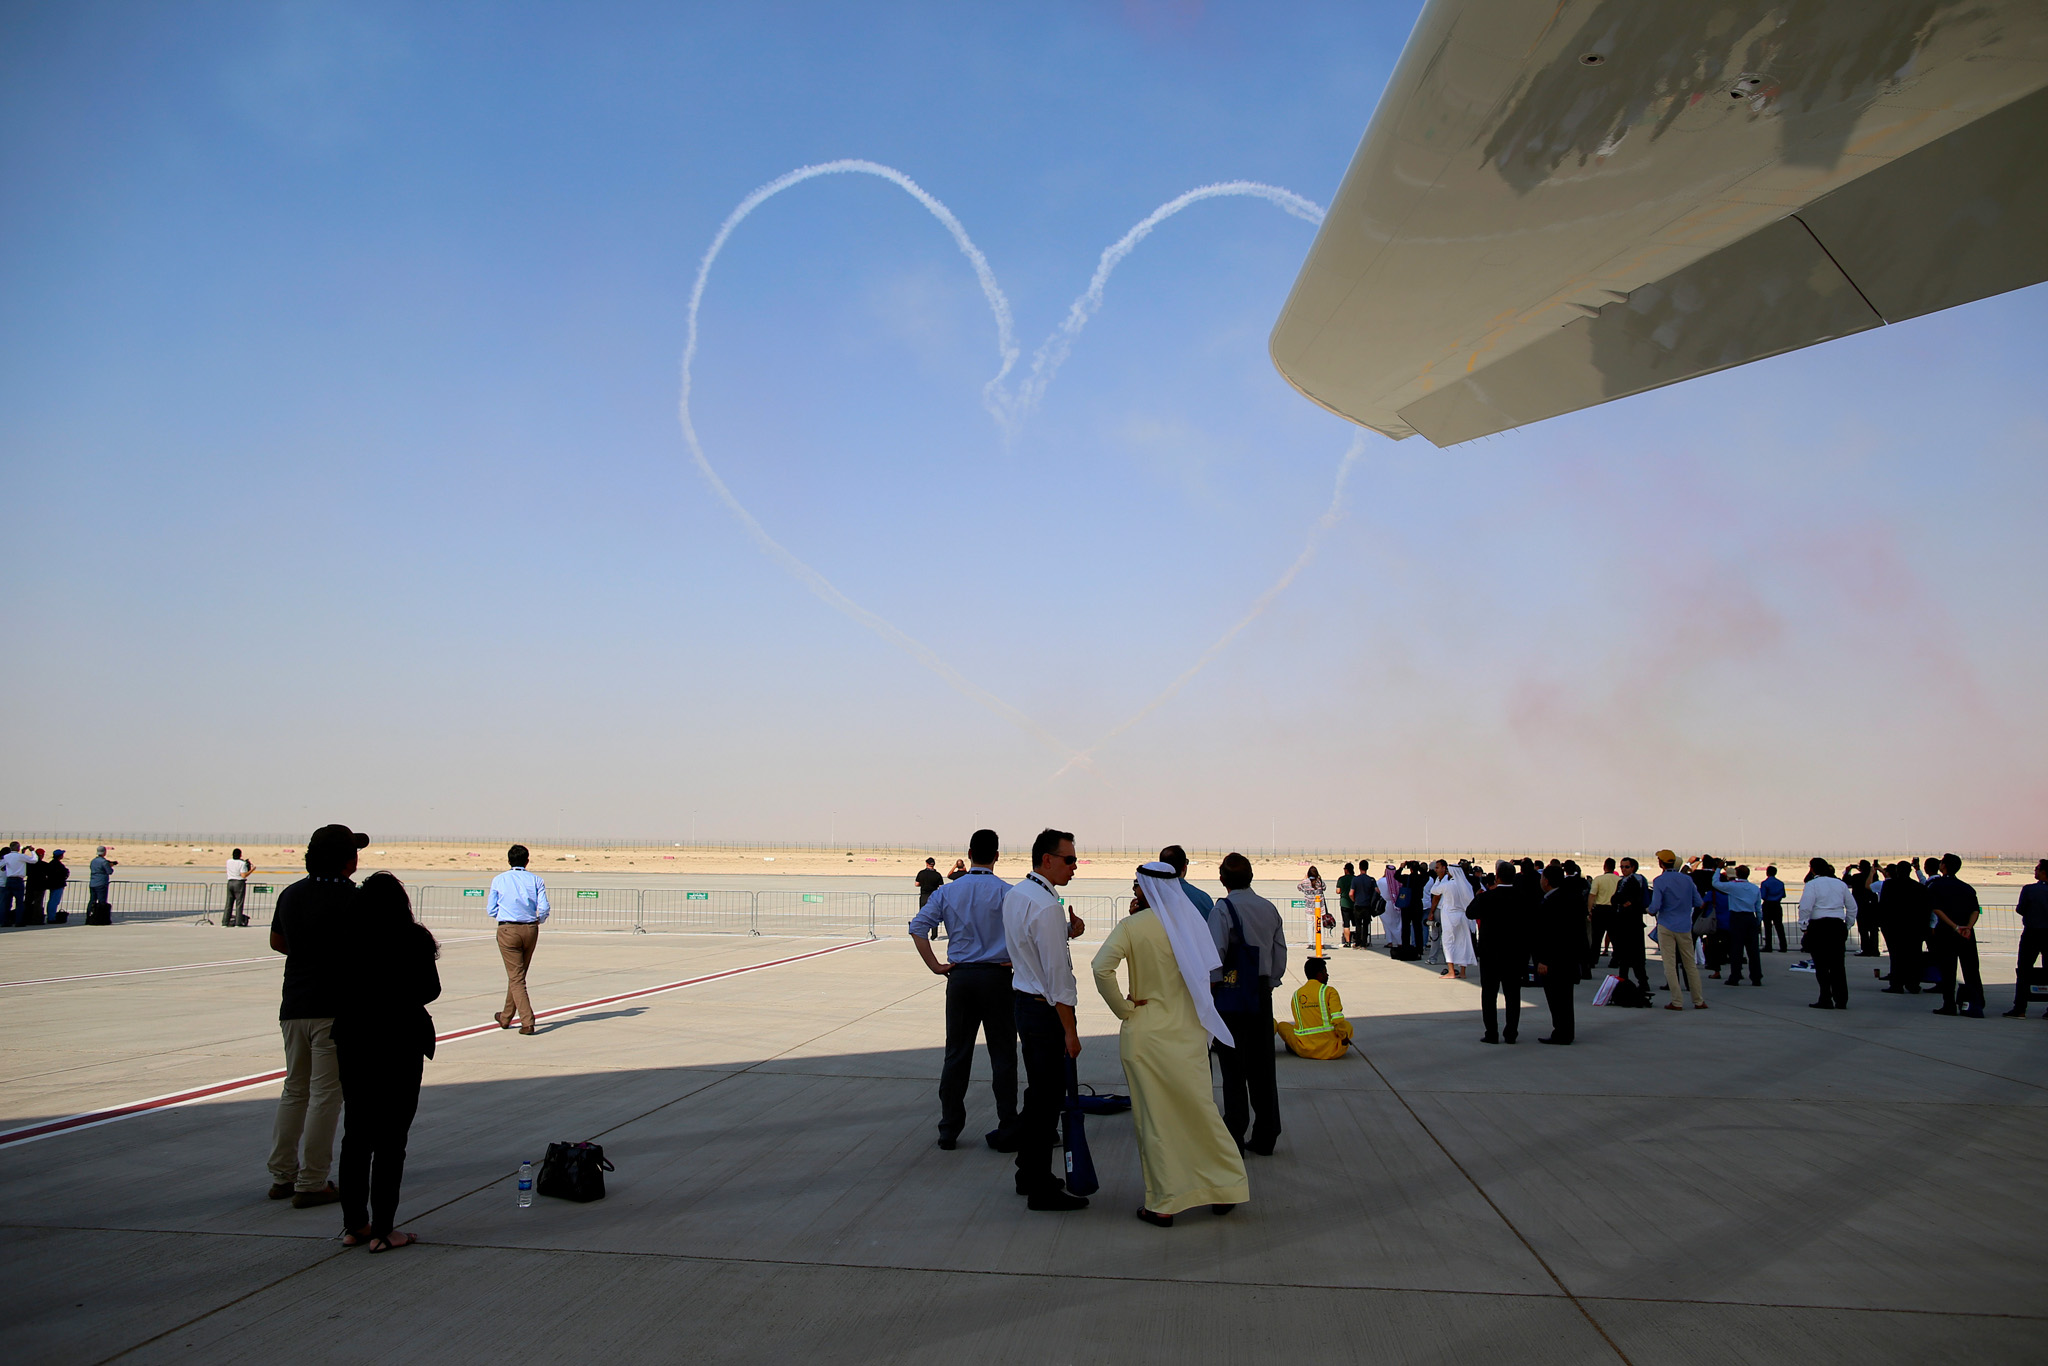 Day Two Of Dubai Air Show 2015...Visitors watch the Al Fursan aerobatic team perform an aerial display on the second day of the 14th Dubai Air Show at Dubai World Central (DWC) in Dubai, United Arab Emirates, on Monday, Nov. 9, 2015. The Dubai Air Show is the biggest aerospace event in the Middle East, Asia and Africa and runs Nov. 8 - 12. Photographer: Jasper Juinen/Bloomberg